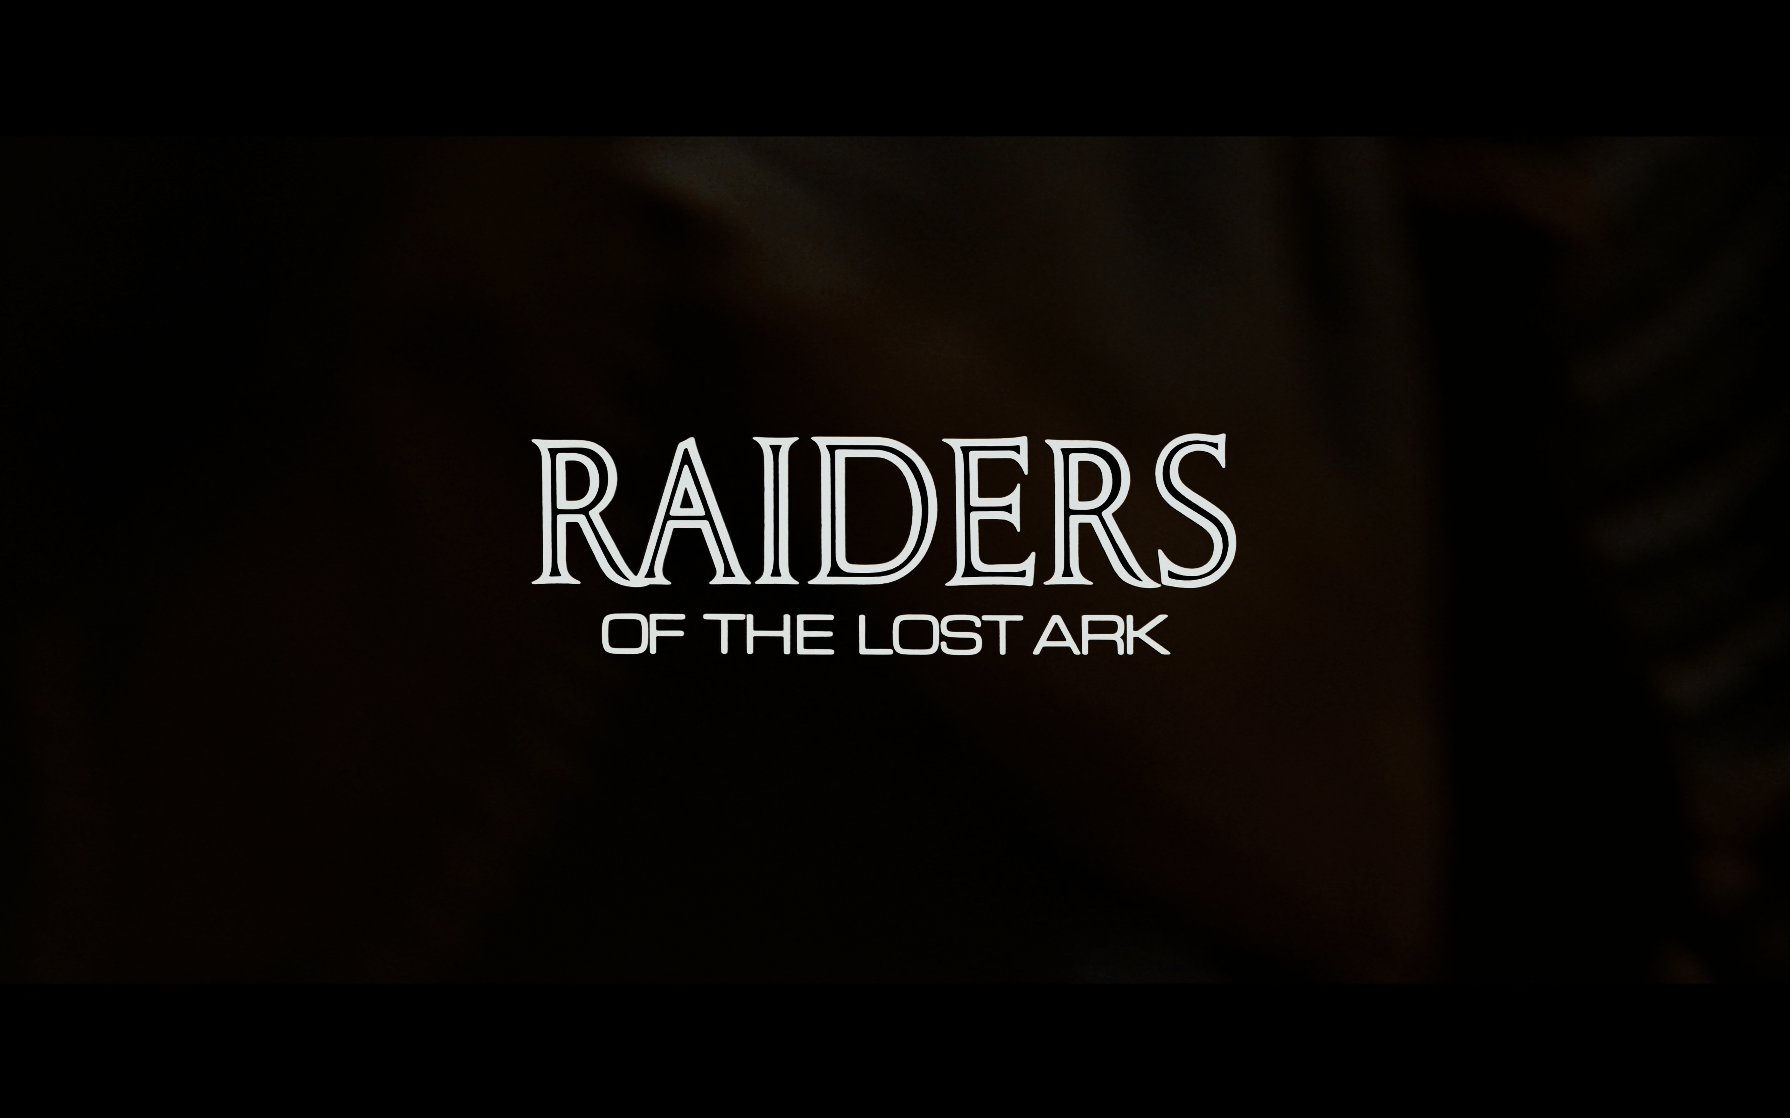 Raiders of the Lost Ark 4K title